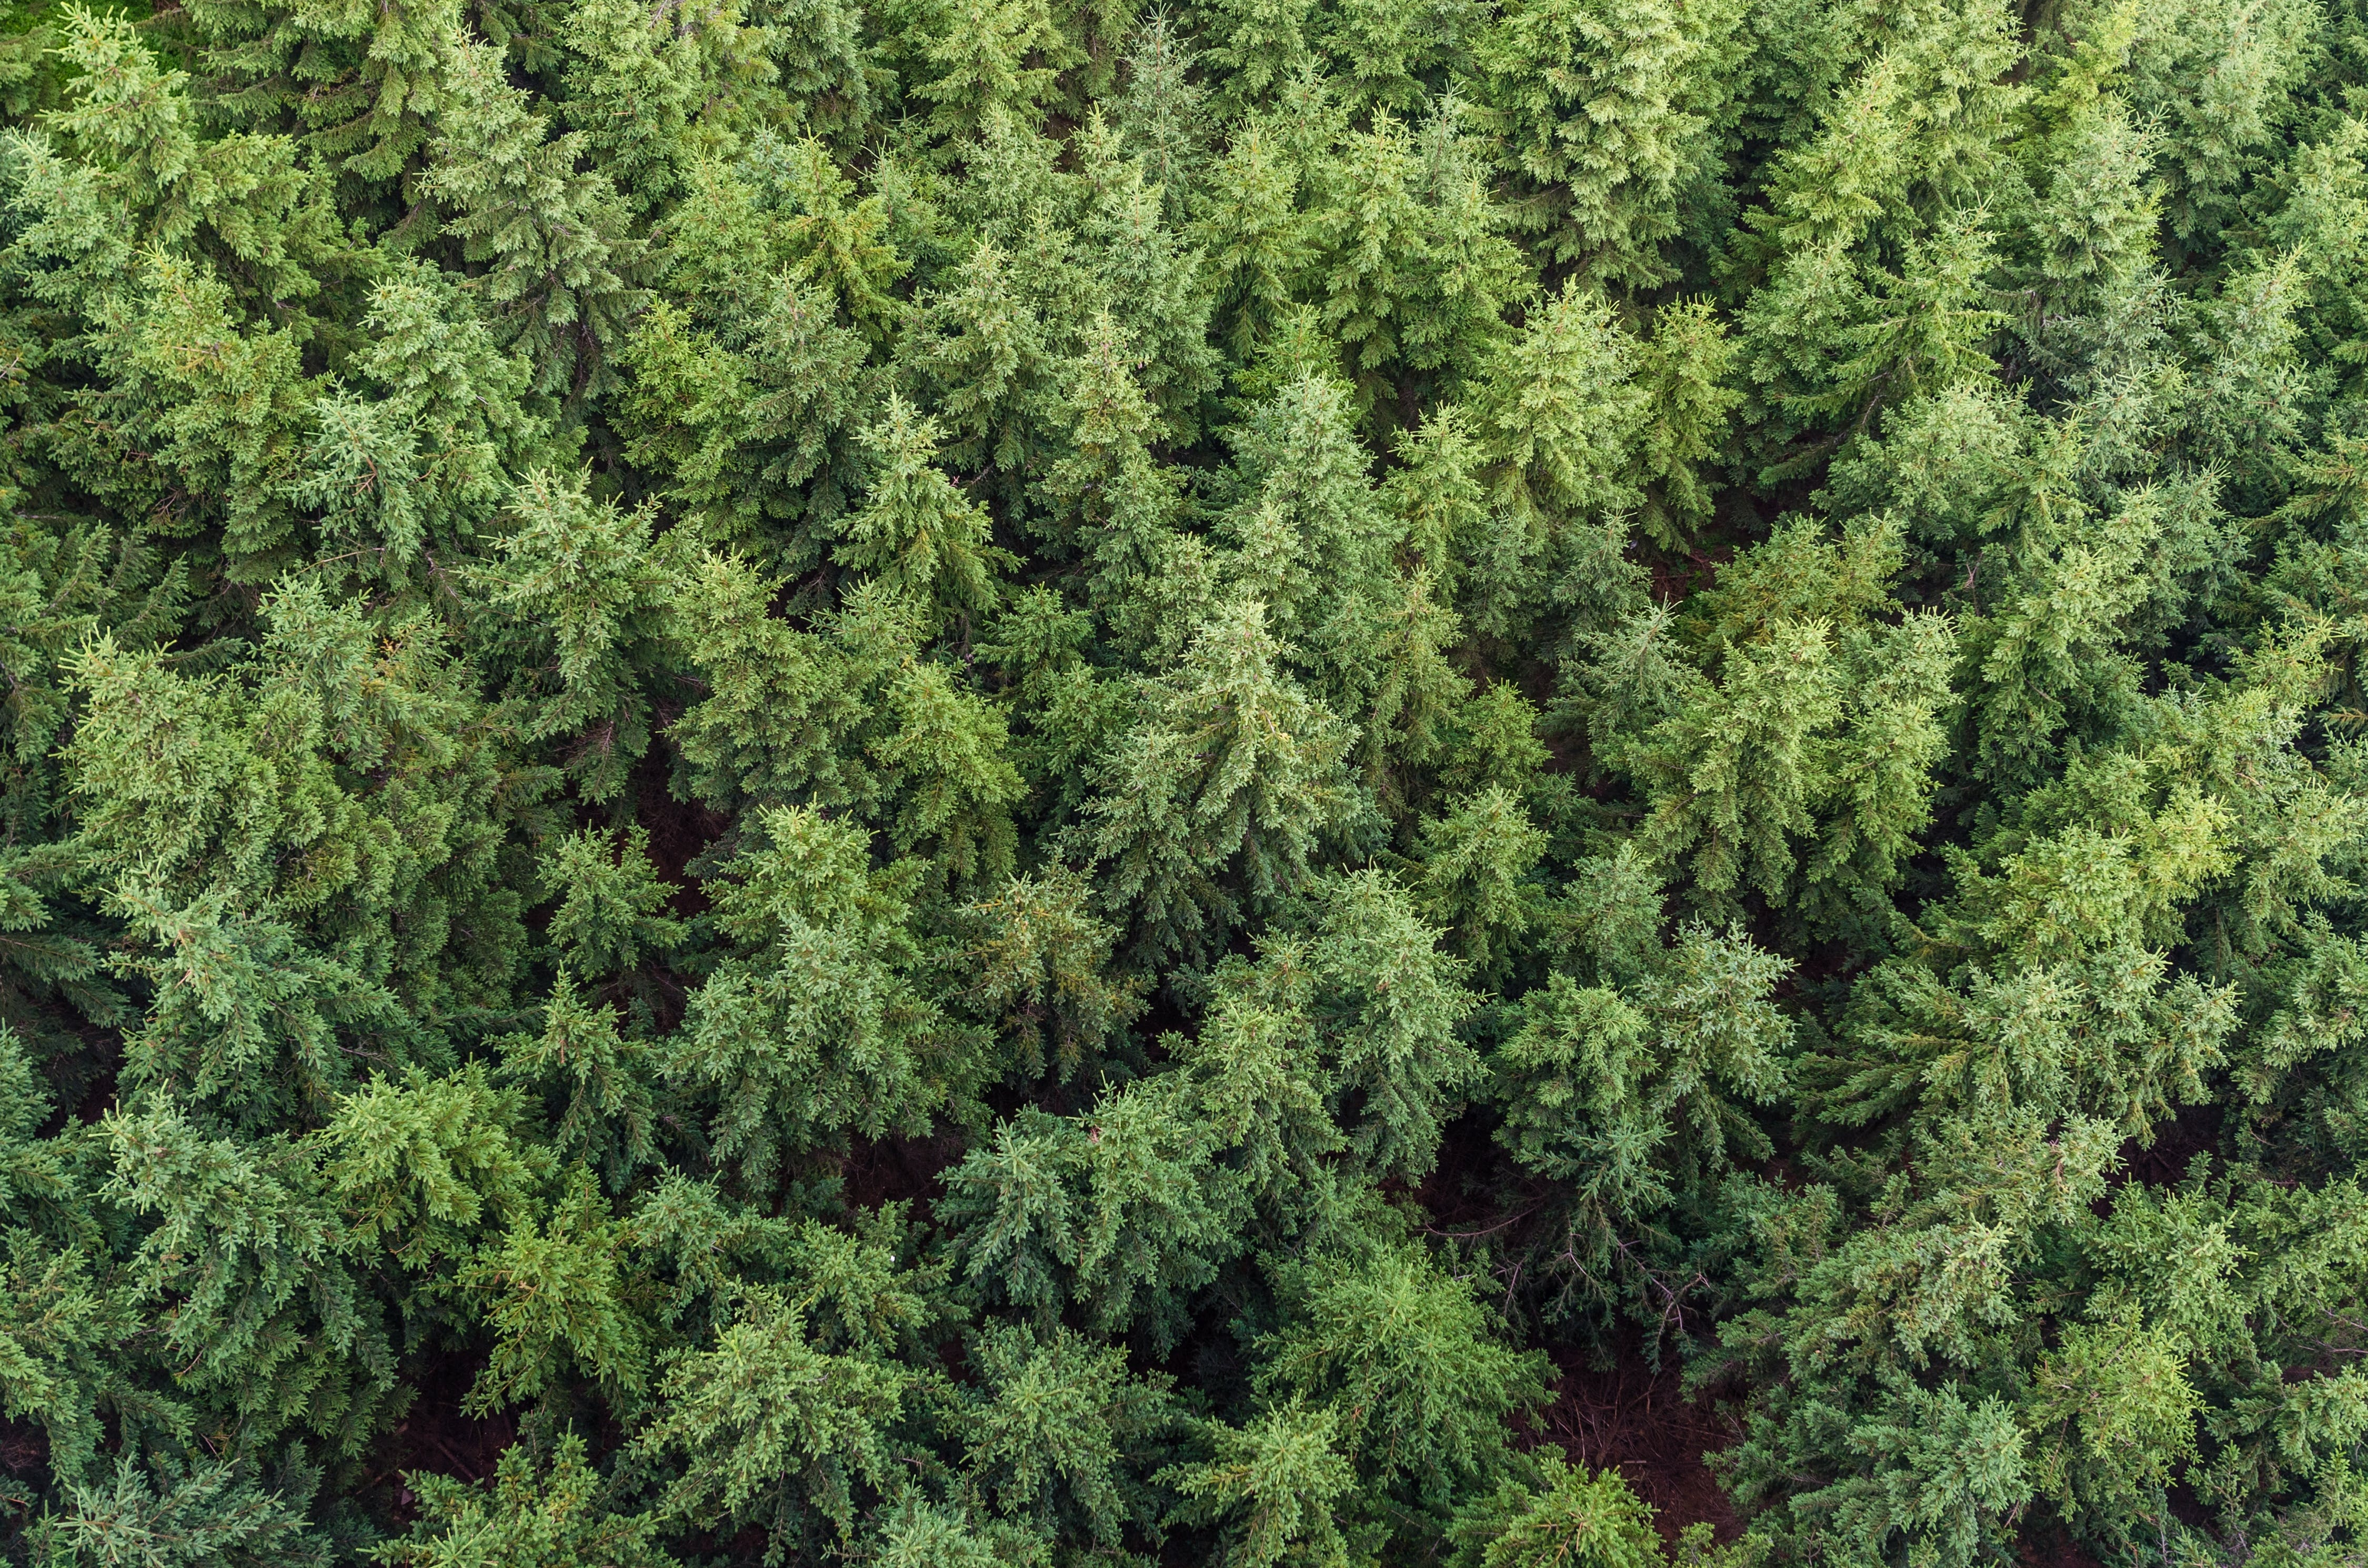 aerial view, conifers, fir trees